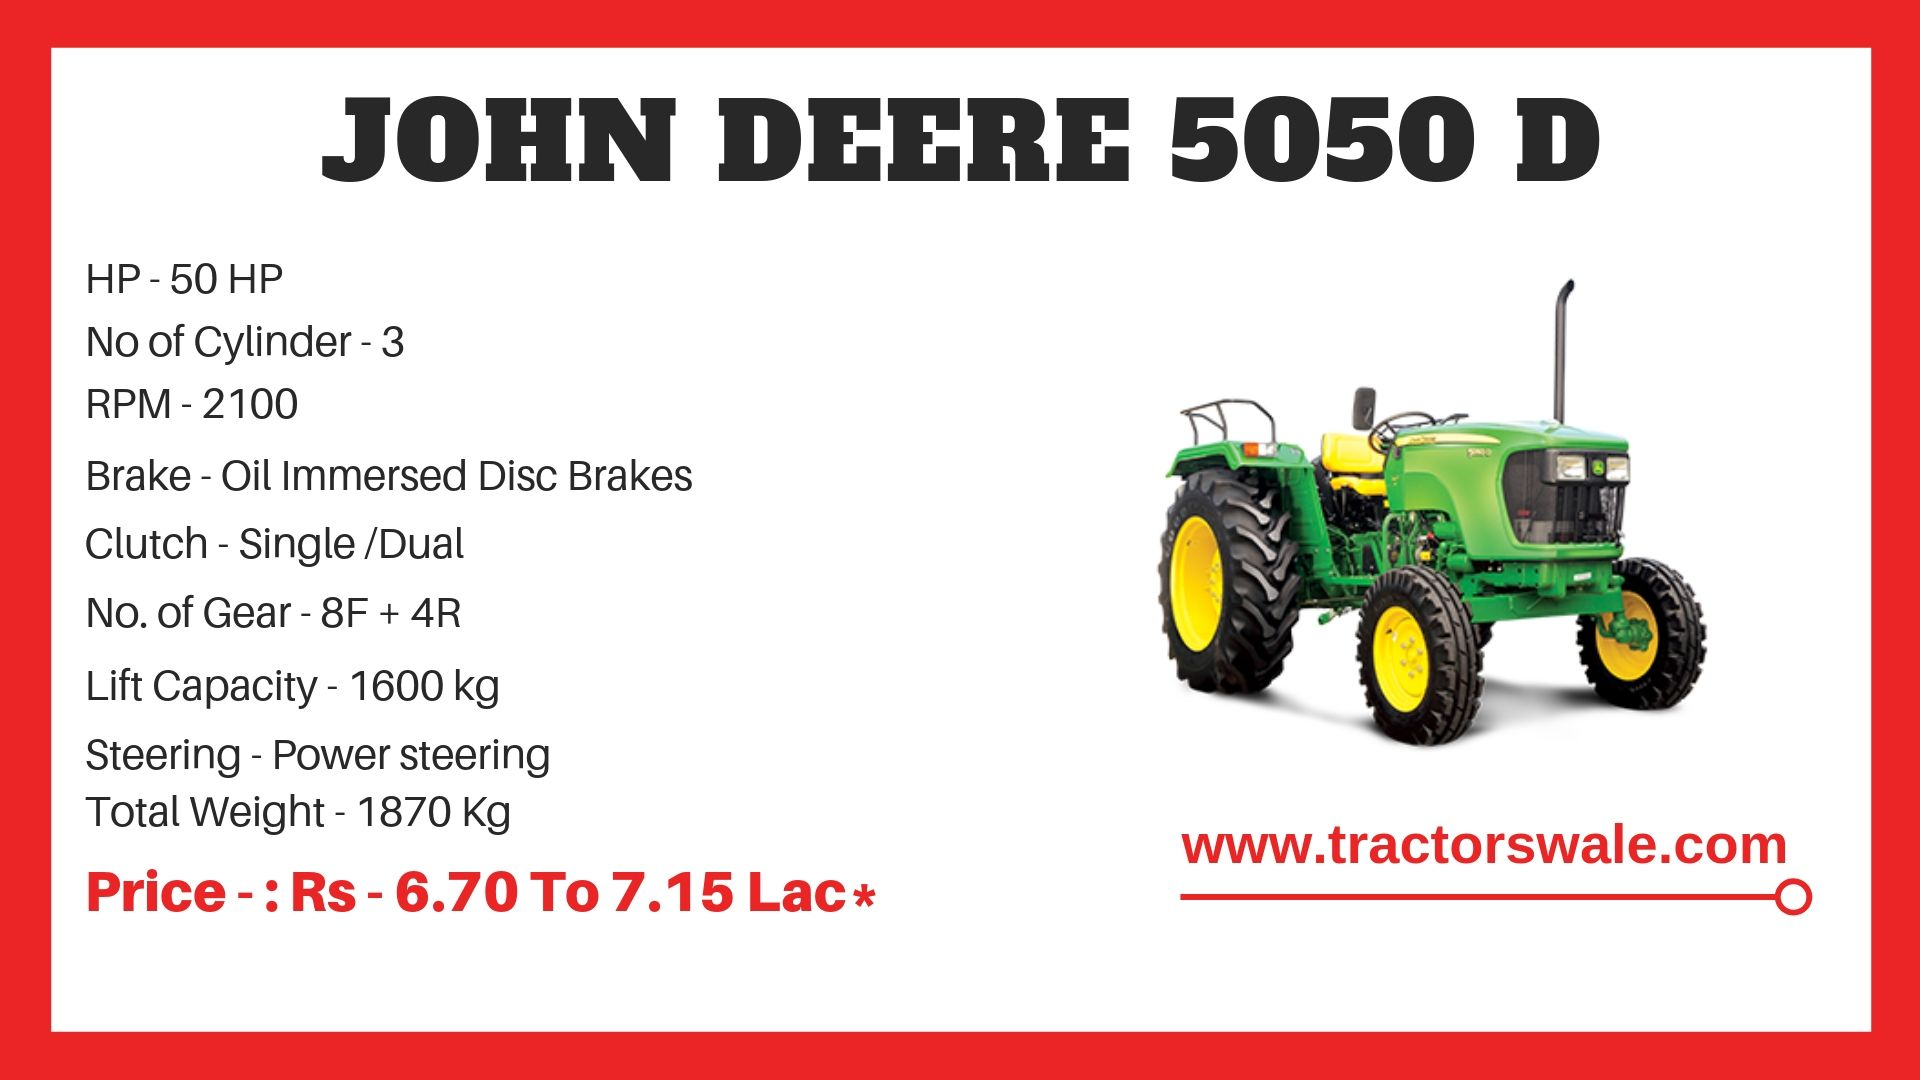 John Deere 5050 D Tractor Specifications